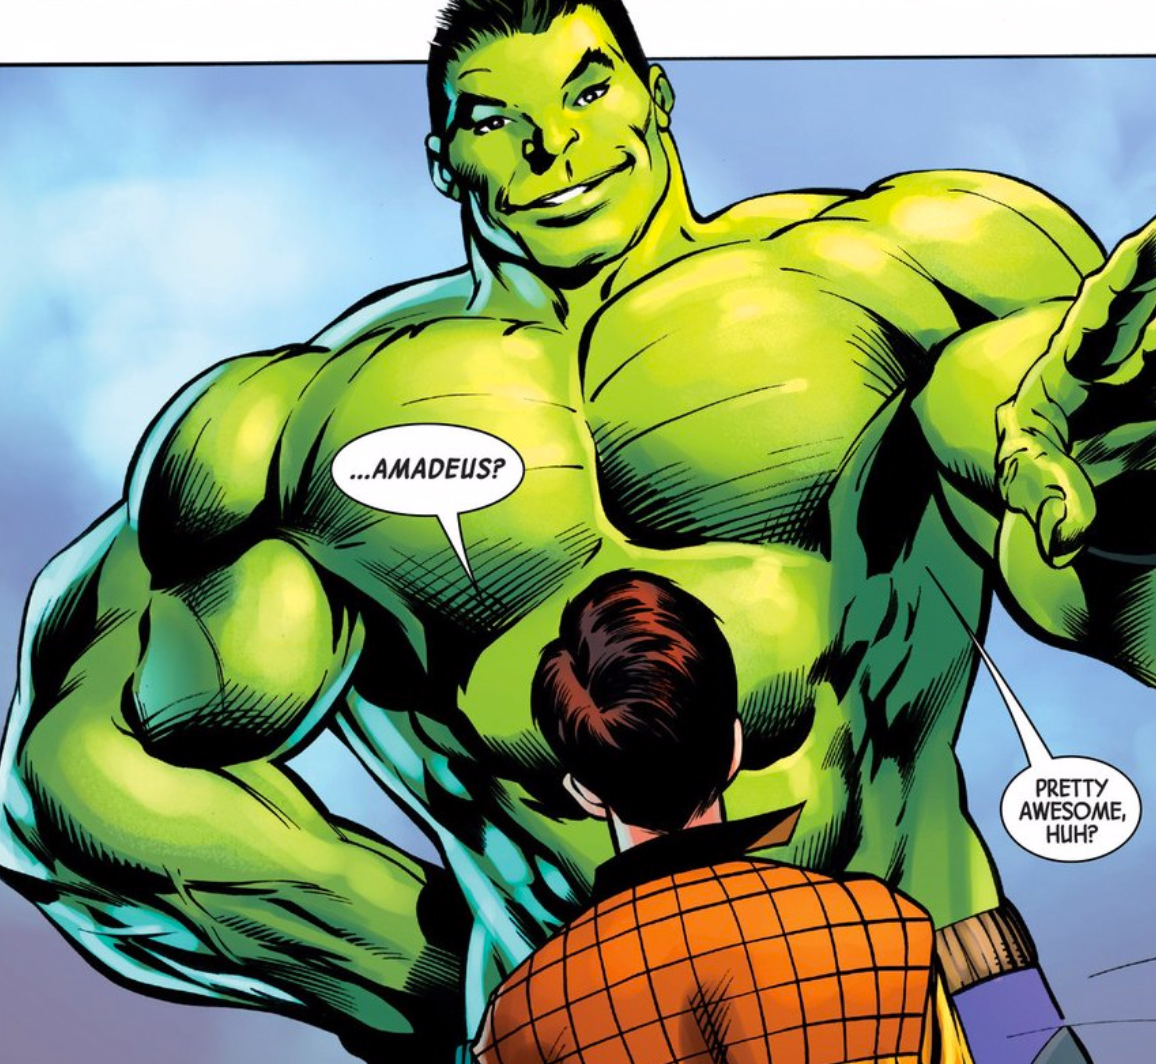 theblerdgurl_Totoally-awesome-hulk-7-insert2.jpg